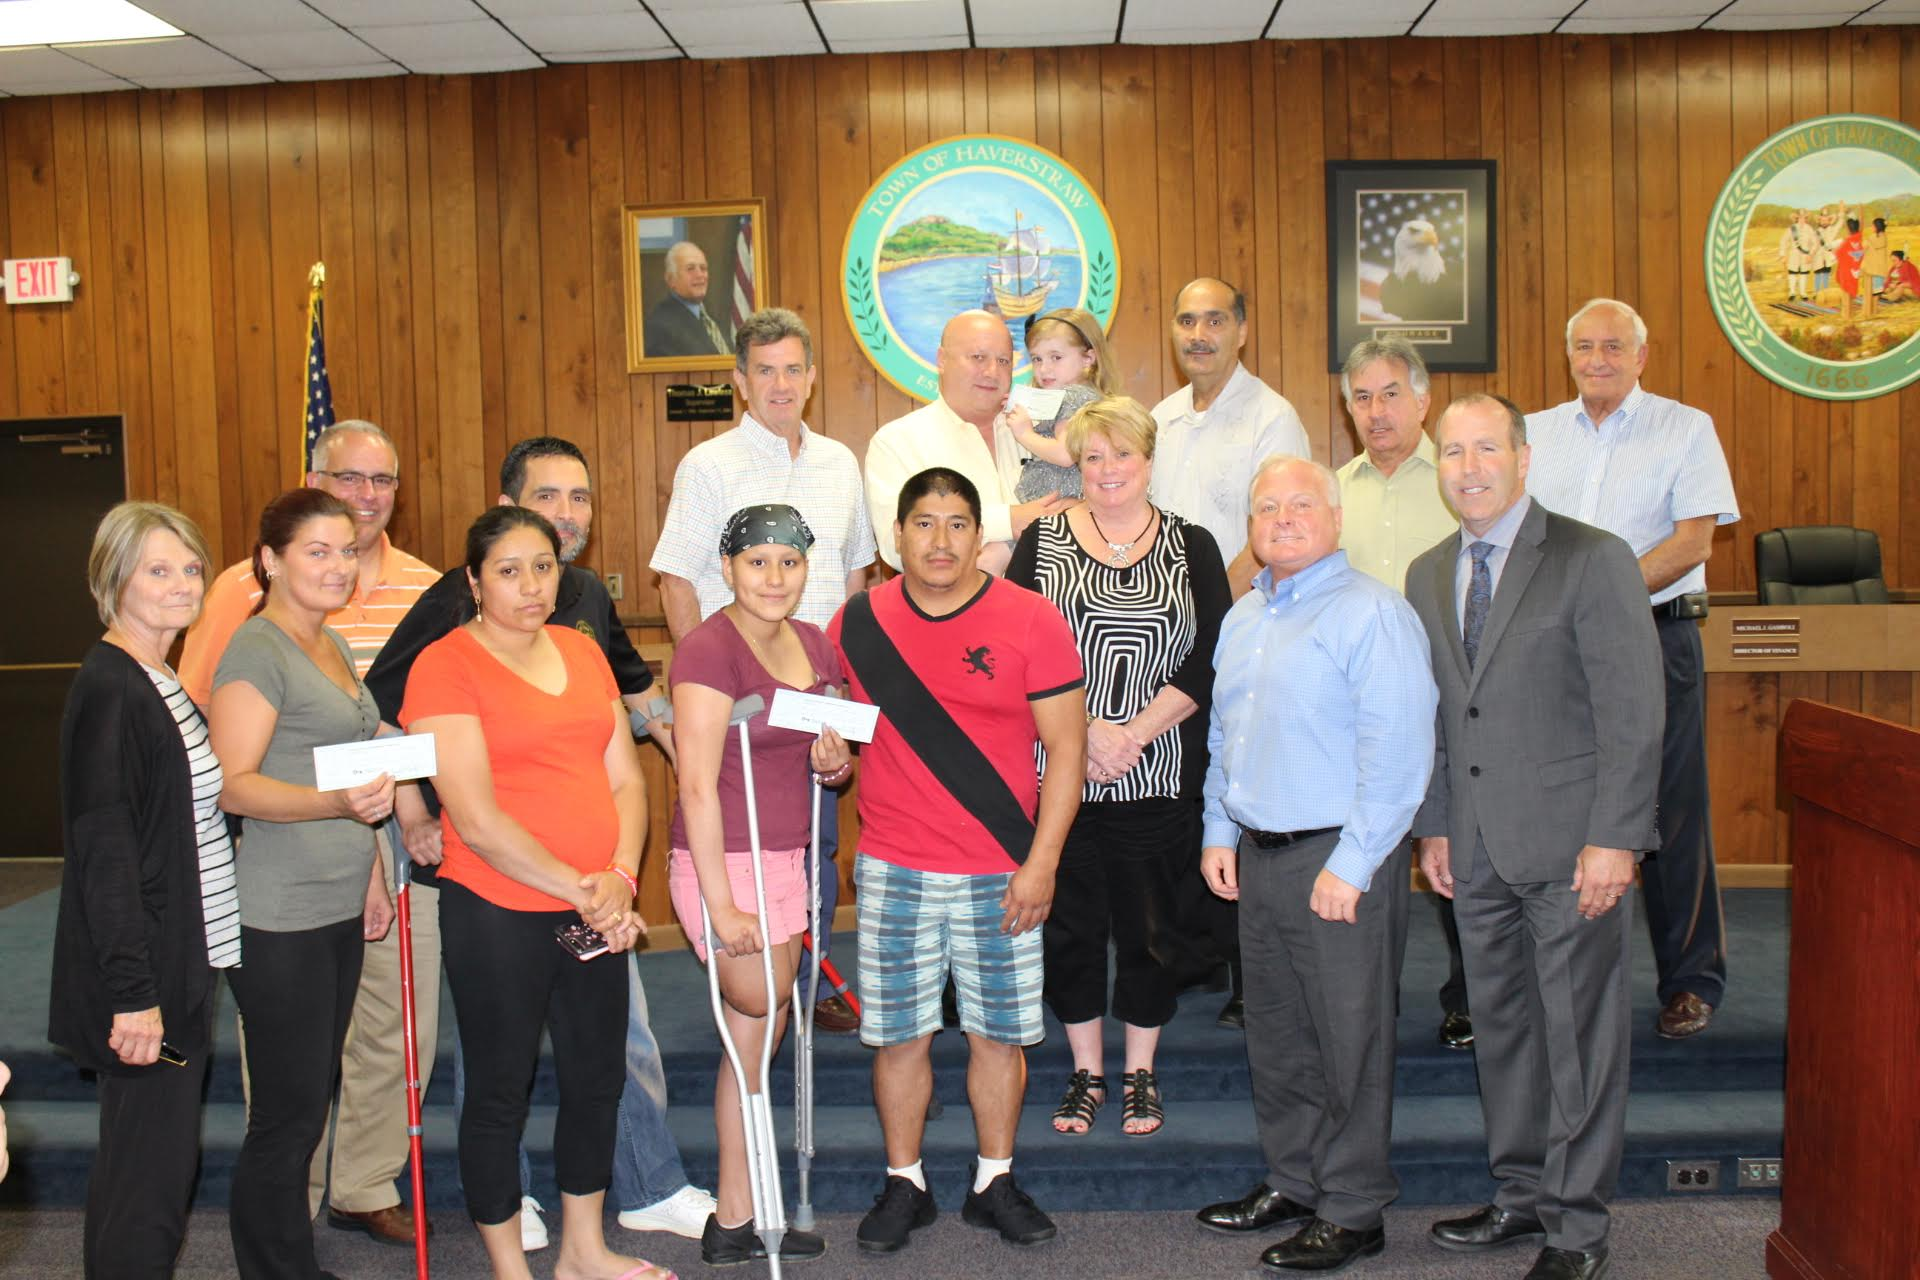 5K RUN/WALK MONIES HANDED OUT AT HAVERSTRAW BOARD MEETING